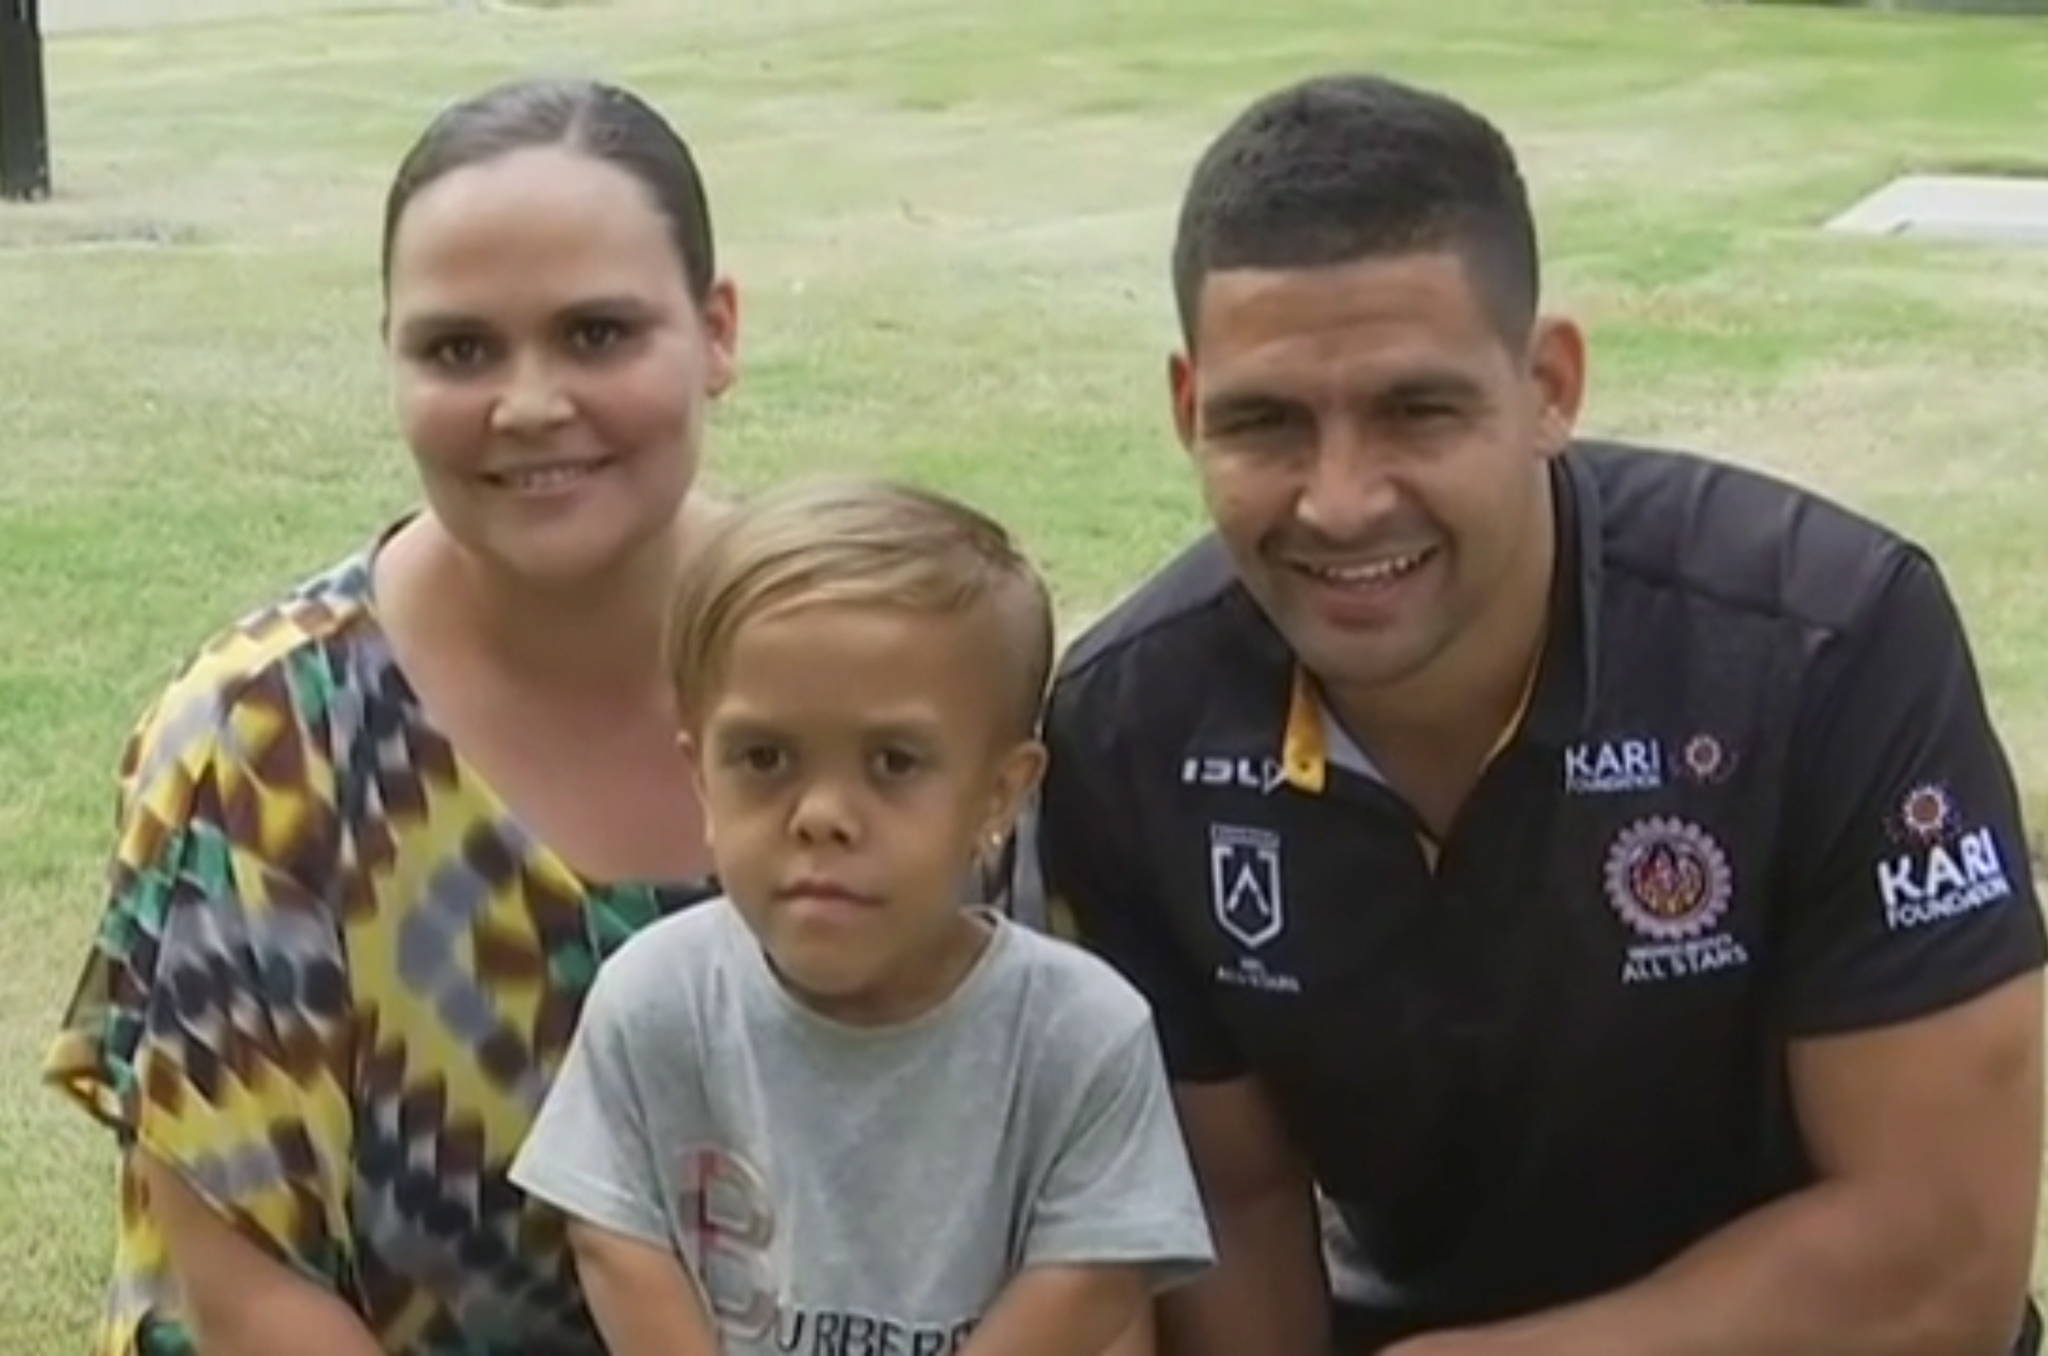 In this photo taken from video provided by Australian Broadcasting Corporation, Quaden Bayles, center, his mother, Yarraka Bayles, and Cody Walker, a professional rugby league player, pose together Friday, Feb. 21, 2020, in Gold Coast, Australia. Bayles, who has dwarfism, received an outpouring of support worldwide after his mother shared an emotional clip of him on social media. (Australian Broadcasting Corporation via AP)